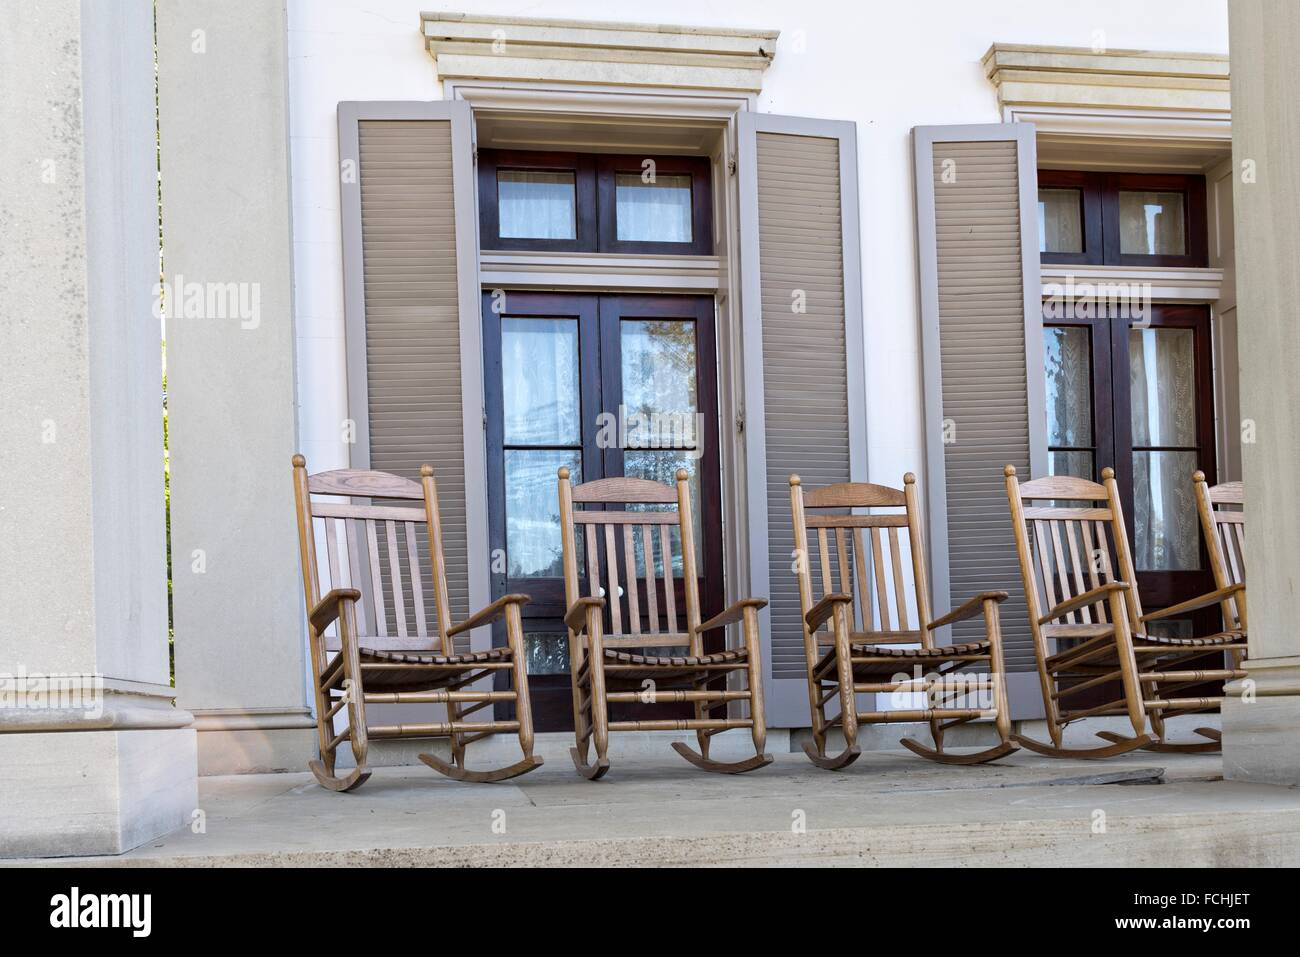 Rocking Chairs On The Front Porch, Main House, Mansion, Belle Meade  Plantation, Nashville, TN.